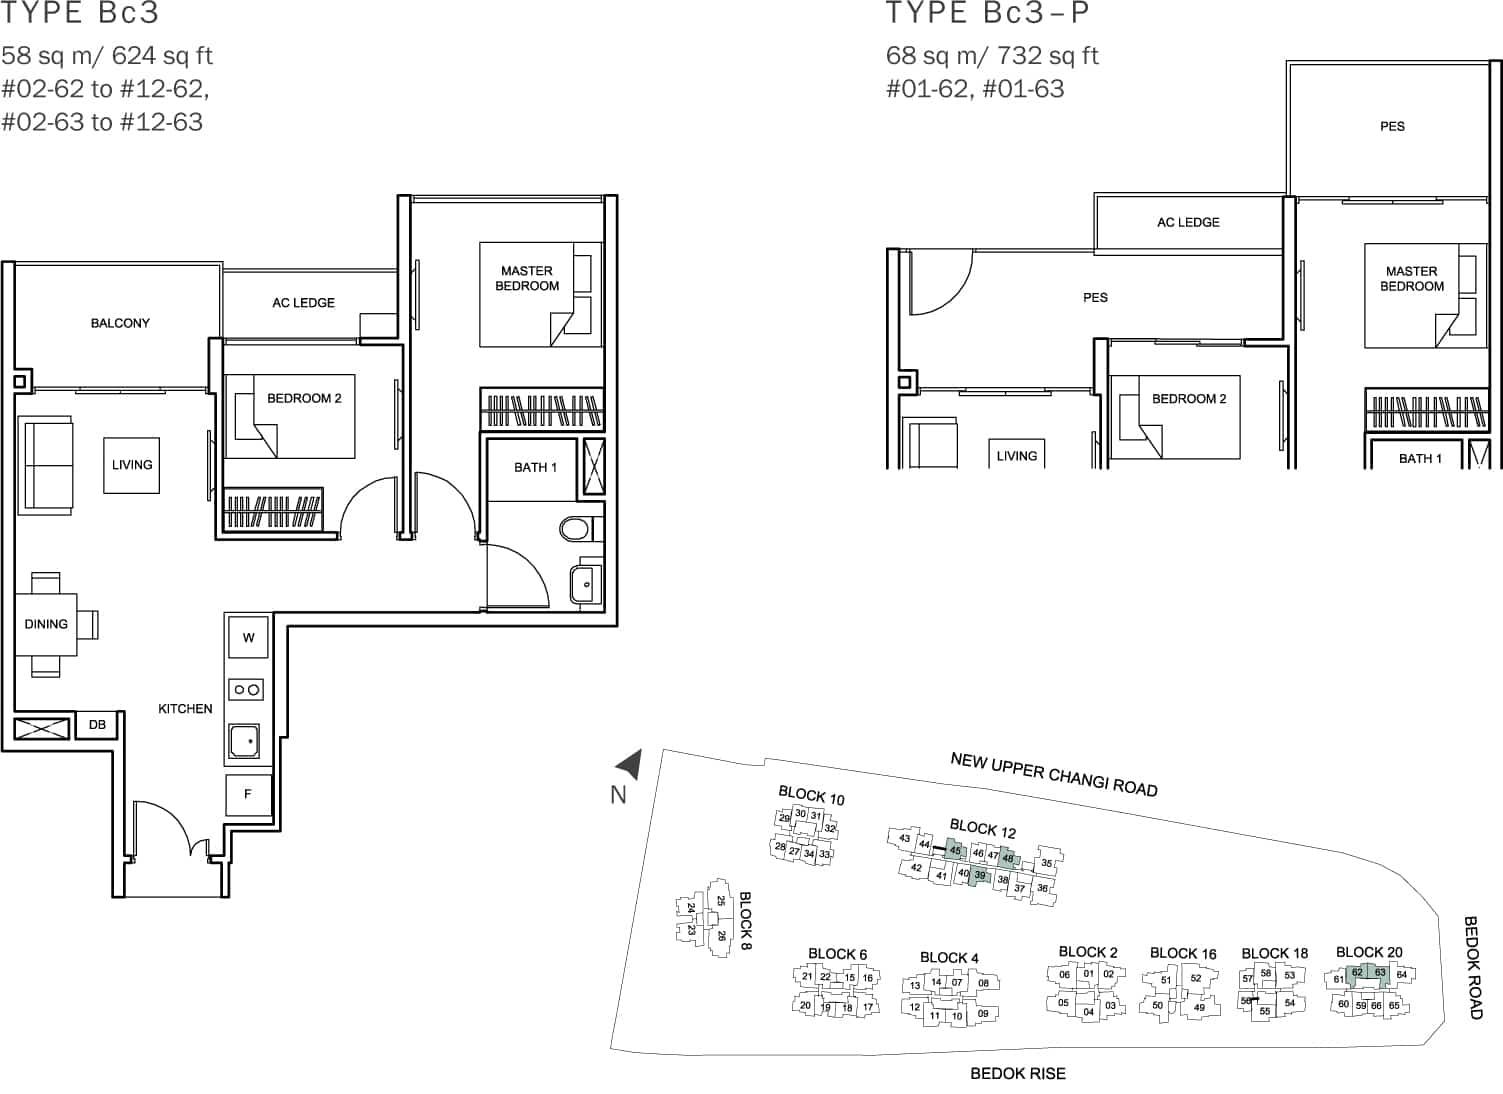 660 Sq Ft To Meters 700 Sq Ft 2 Bedroom Floor Plan 600